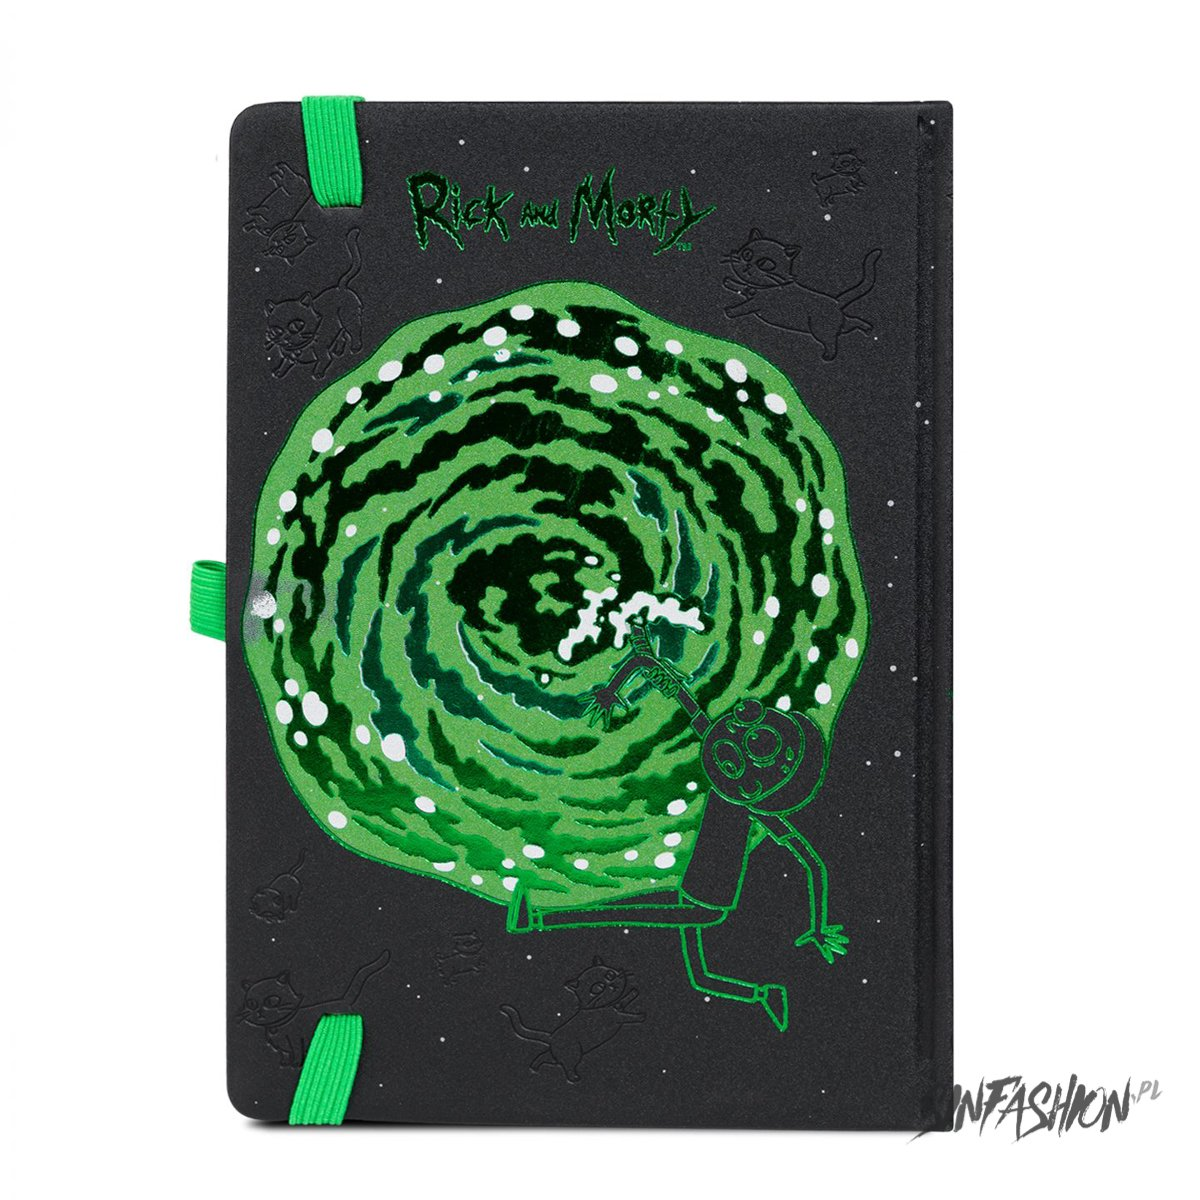 Notes Rick And Morty Portals